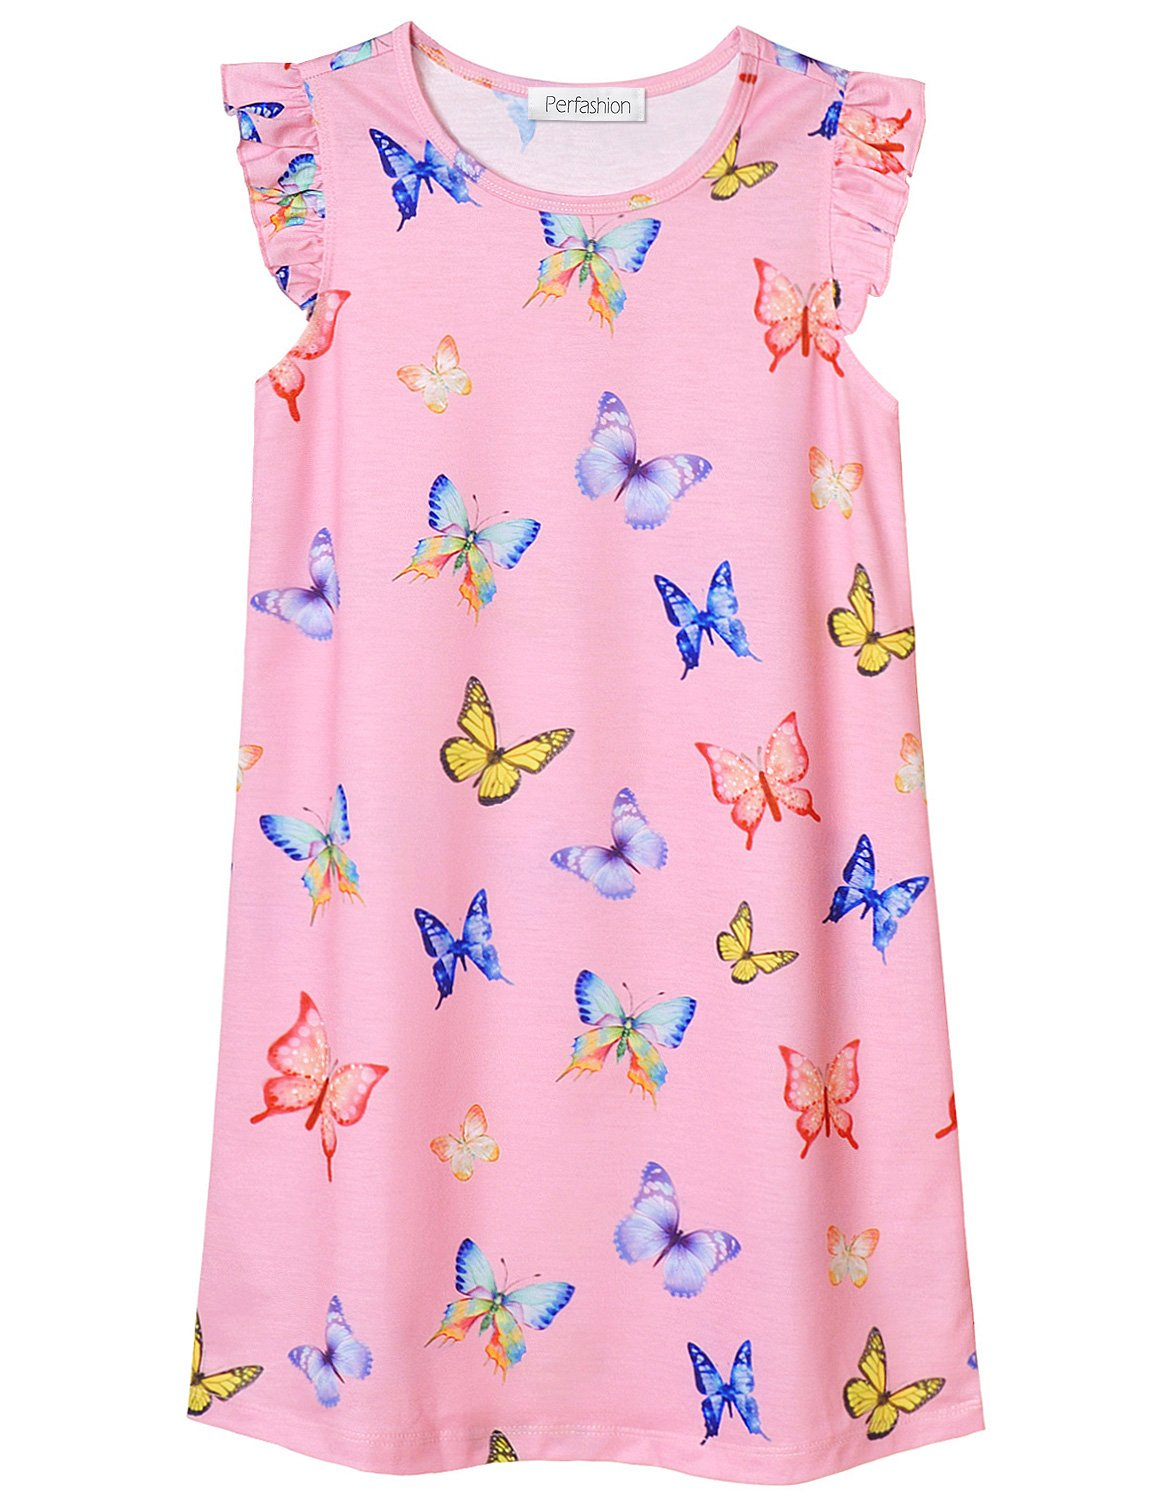 Image of Colorful Sleeveless Pink Butterflies Nightgown for Girls - See More Designs